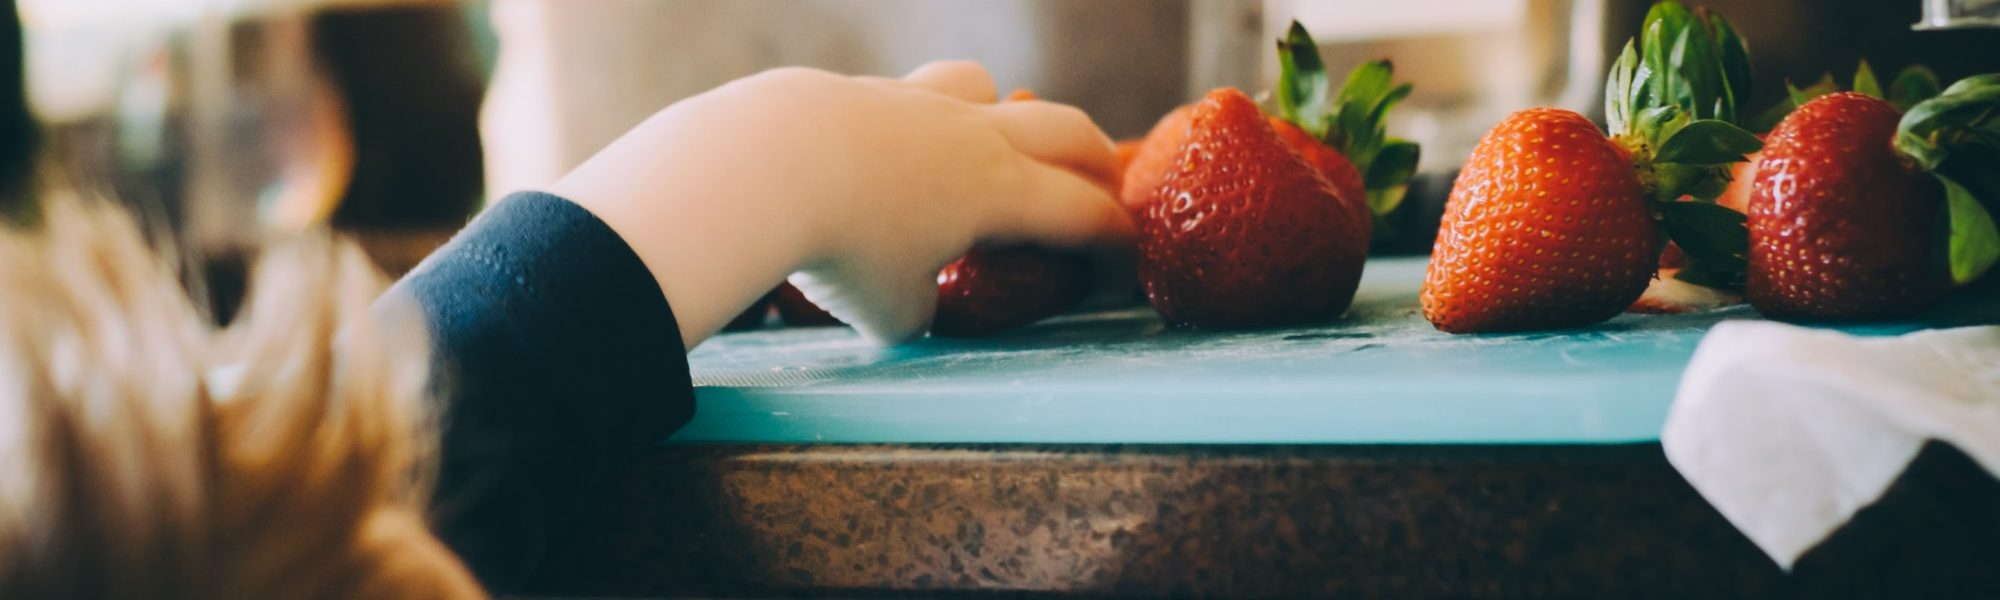 Hand reaching out for strawberries